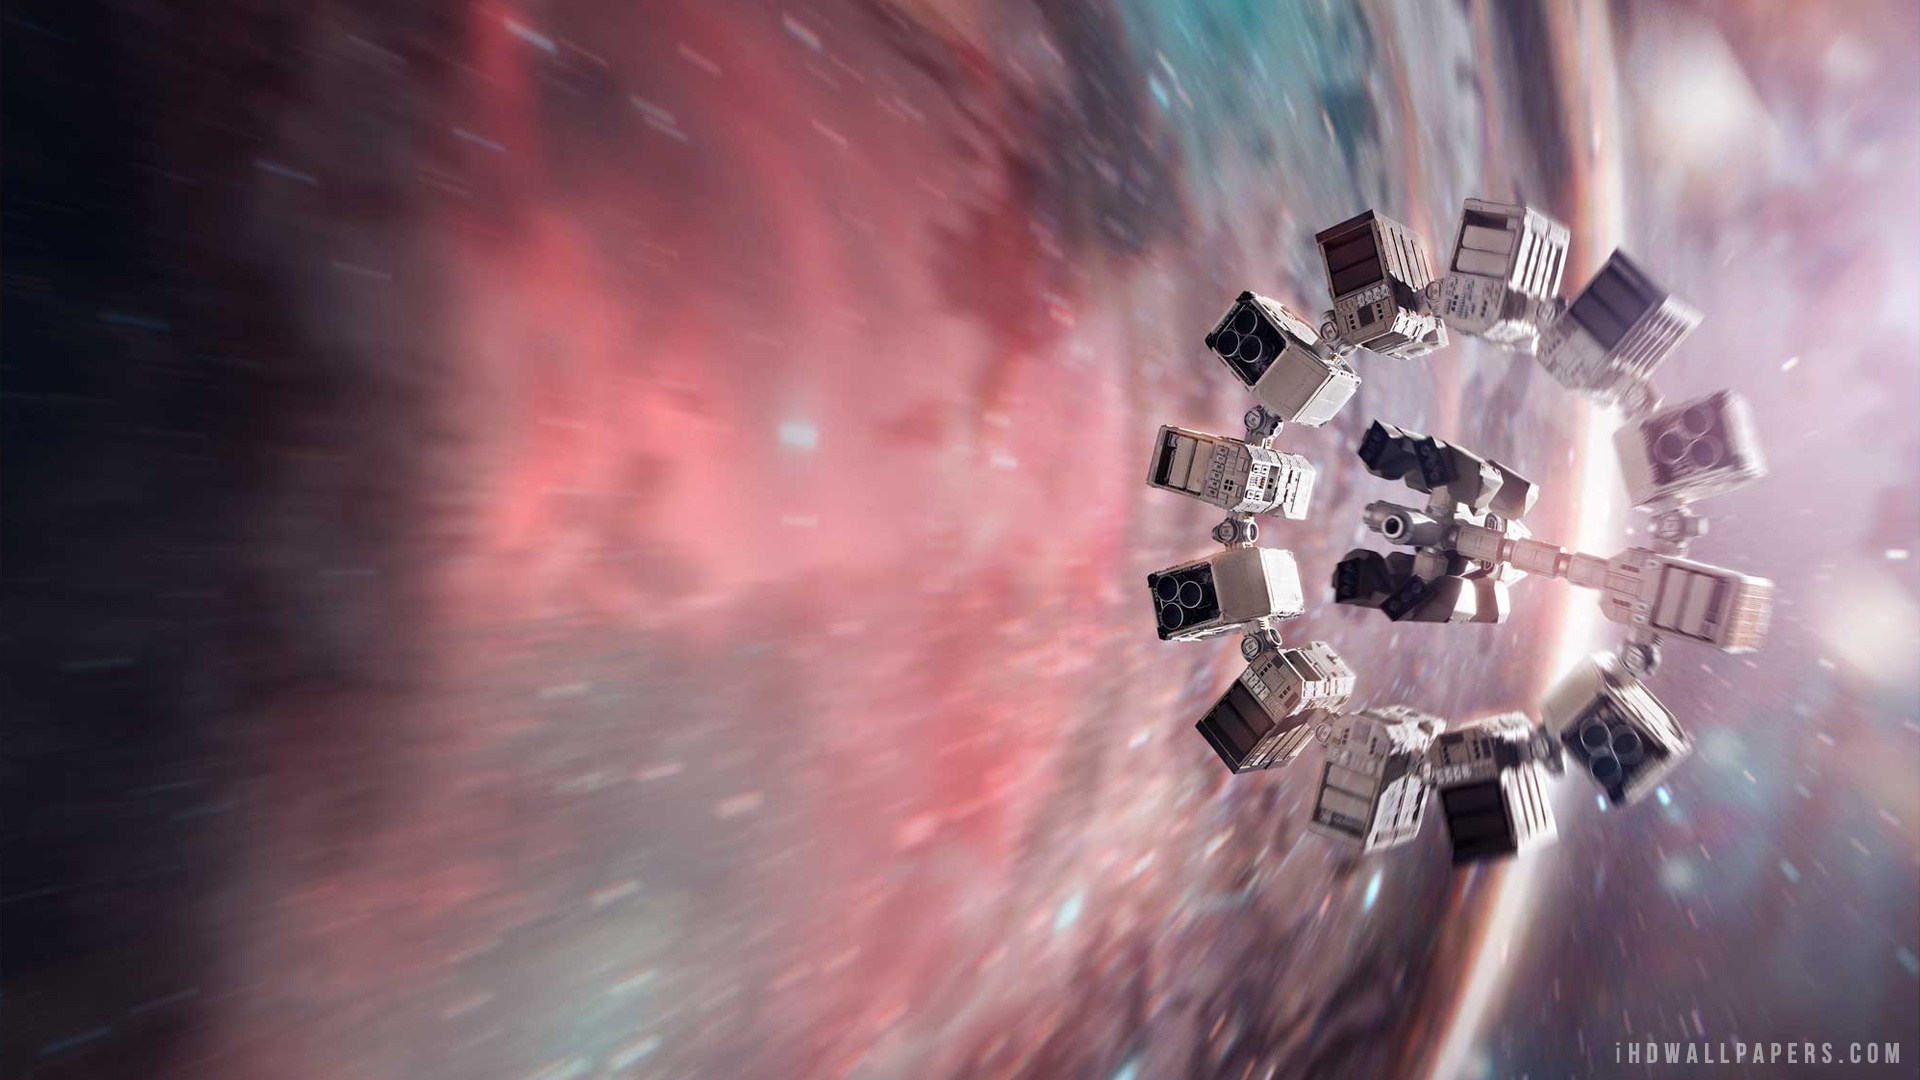 2014 Interstellar Movie wallpaper 1920x1080